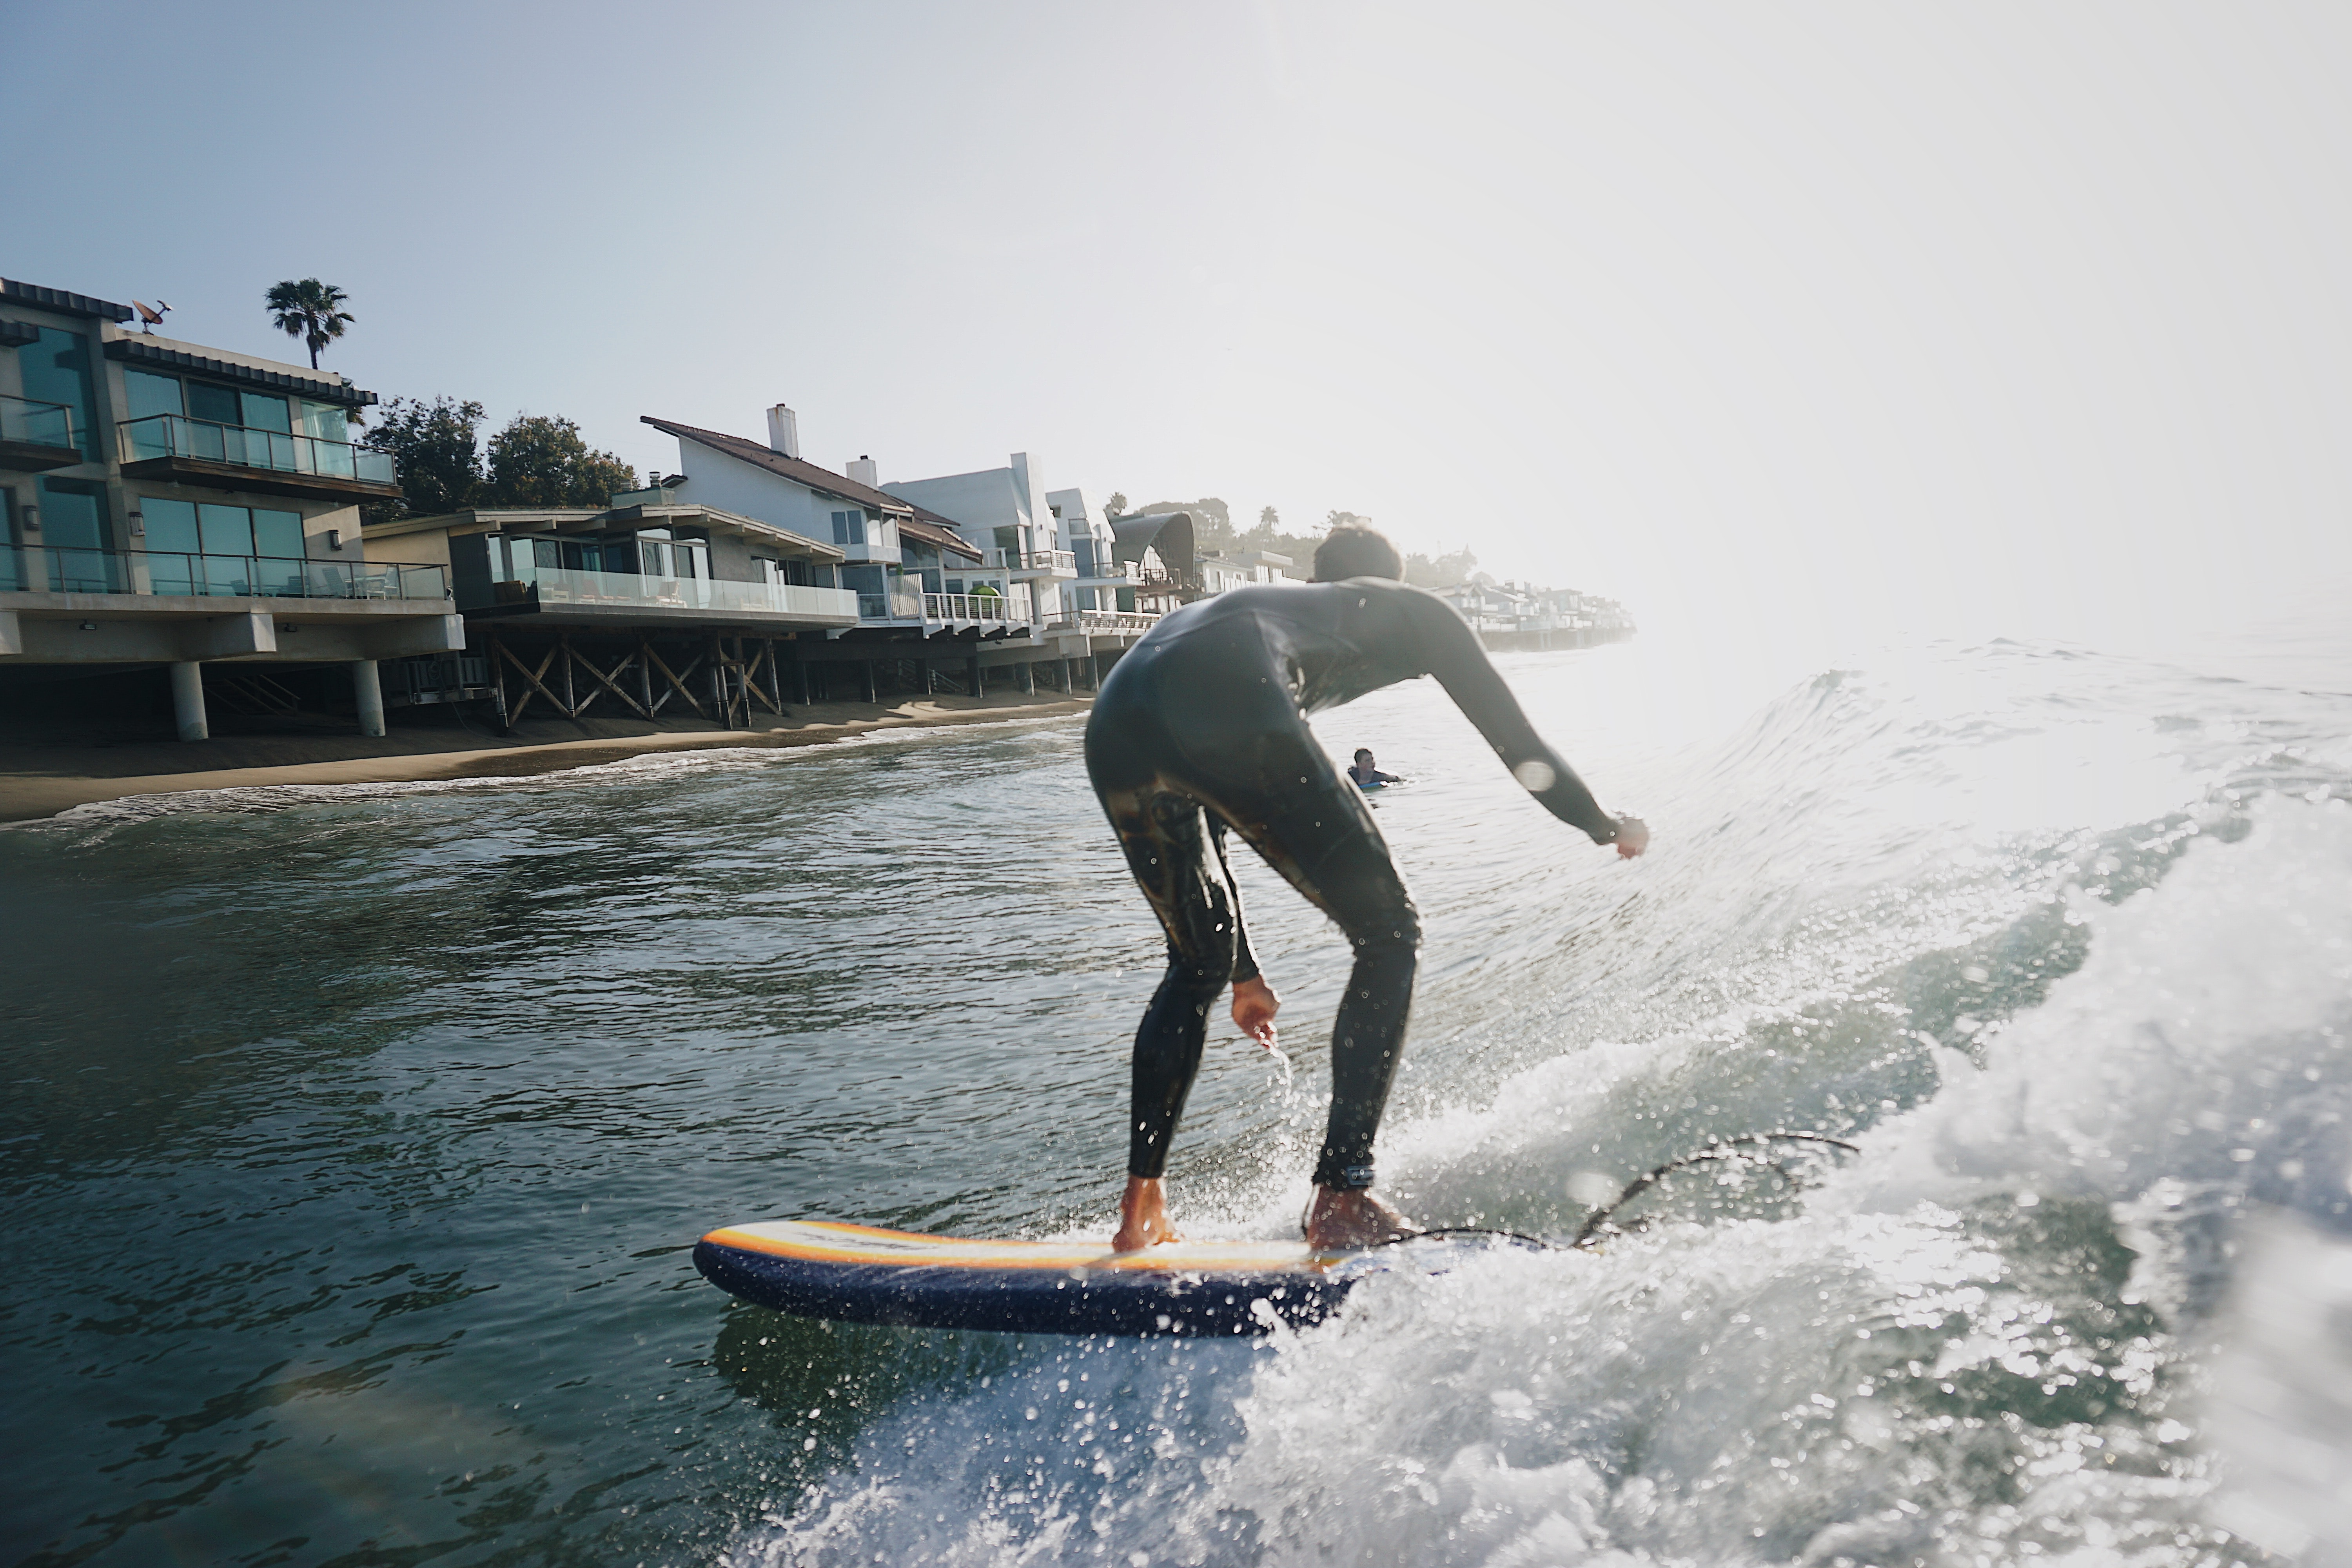 man on surfboard on body of water